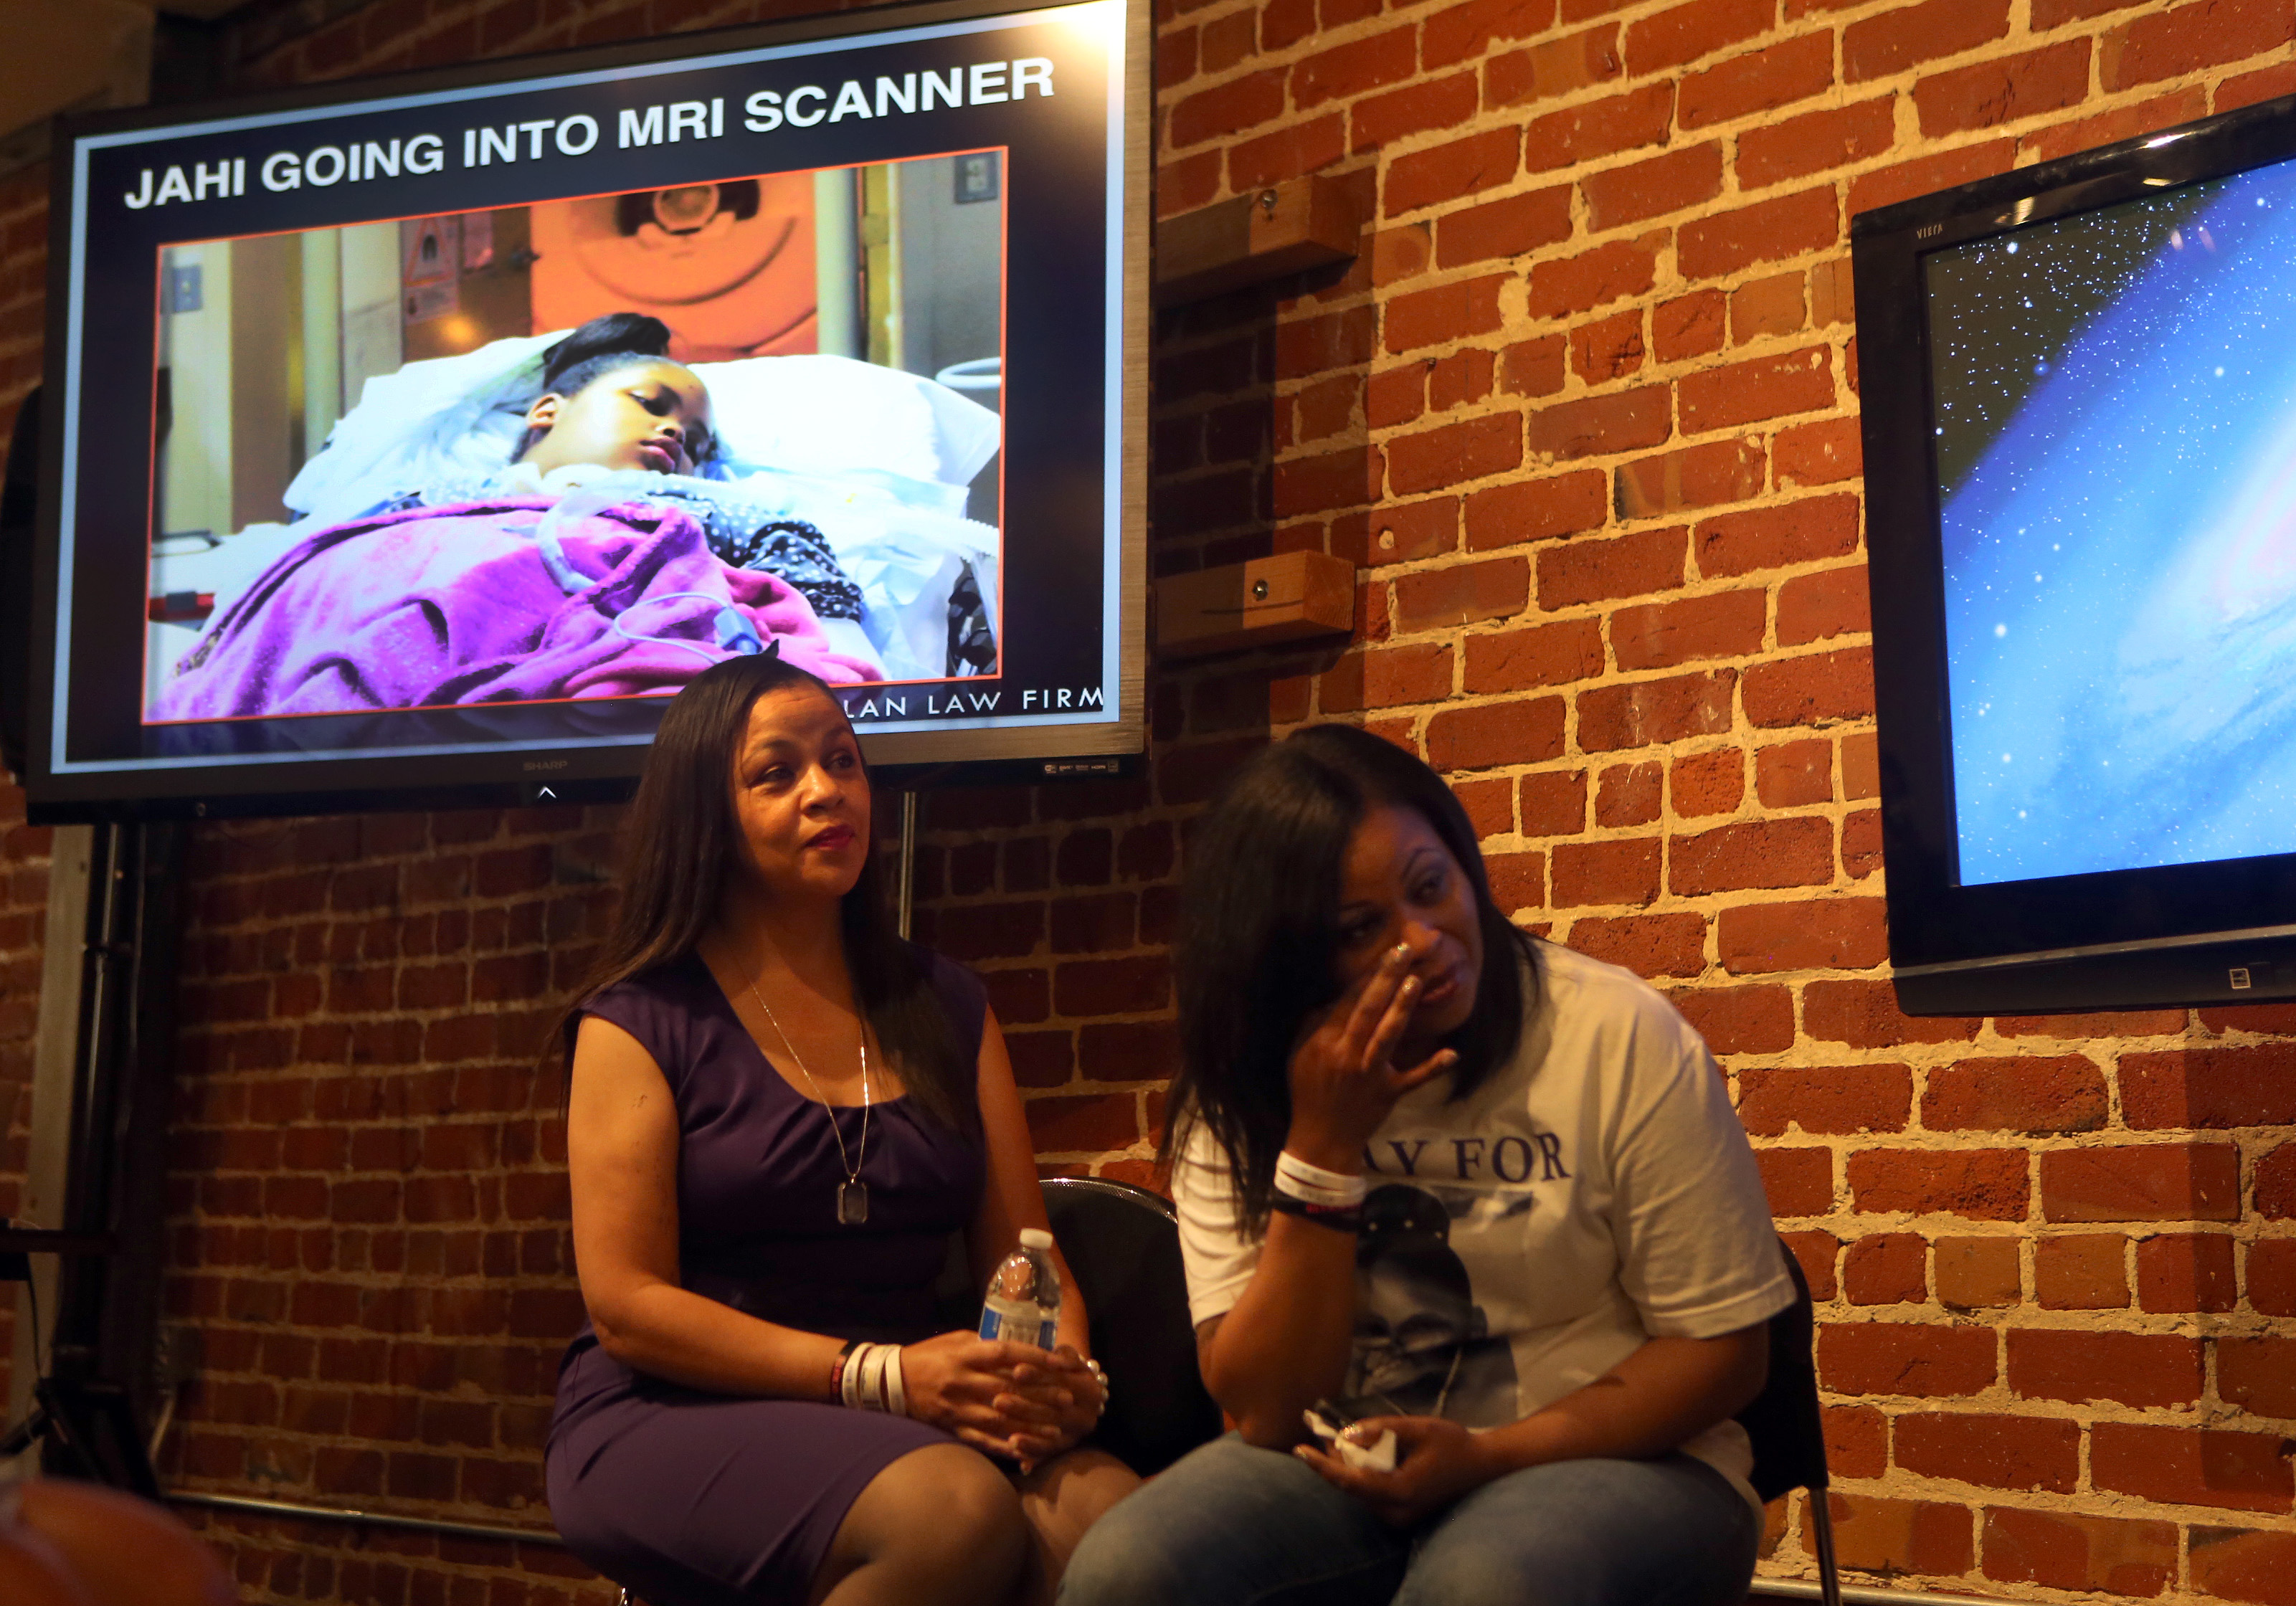 In this Oct. 2, 2014 file photo Sandra Chatman, left, and Nailah Winkfield look on as a photo of their granddaughter and daughter, respectively, Jahi McMath, 13, is shown during a press conference at Dolan Law Firm in San Francisco, Calif. Christopher Dolan, attorney for Jahi McMath's family, showed photos and a pair of videos where McMath moves her foot and arm in response to the voice of her mother Nailah Winkfield in a home in New Jersey. She was declared brain-dead in California after tonsil, throat and nose surgeries to relieve her sleep apnea. (Ray Chavez/Bay Area News Group)